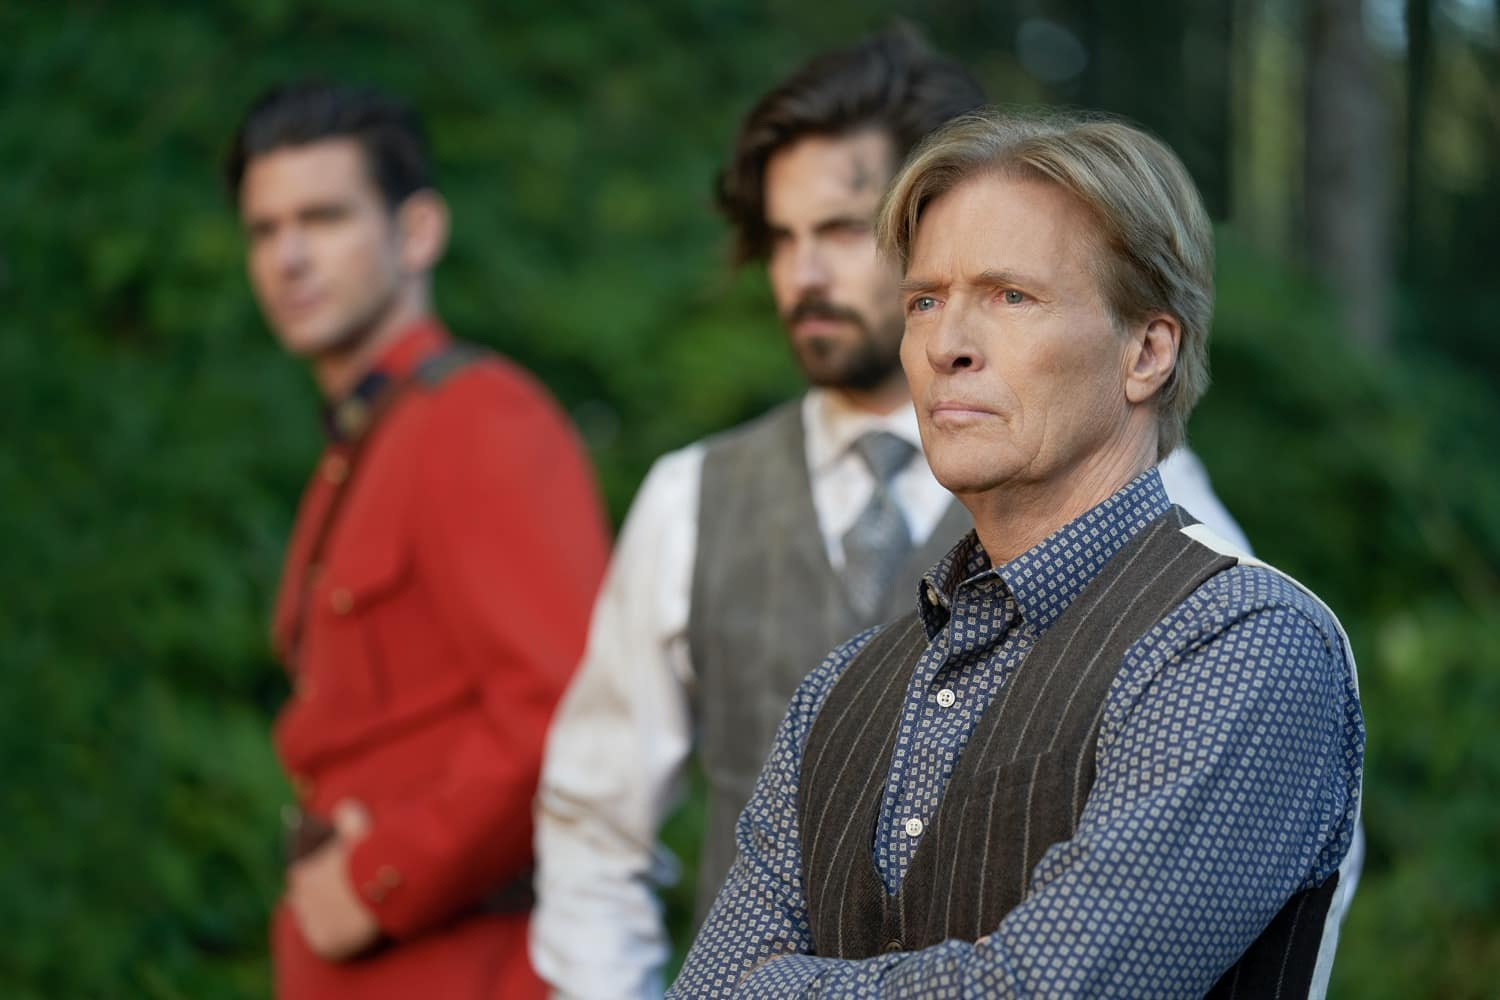 When Calls The Heart Season 8 Episode 3 Photo: Kevin McGarry, Chris McNally, Jack Wagner   Credit: ©2021 Crown Media United States LLC/Photographer: Ricardo Hubbs